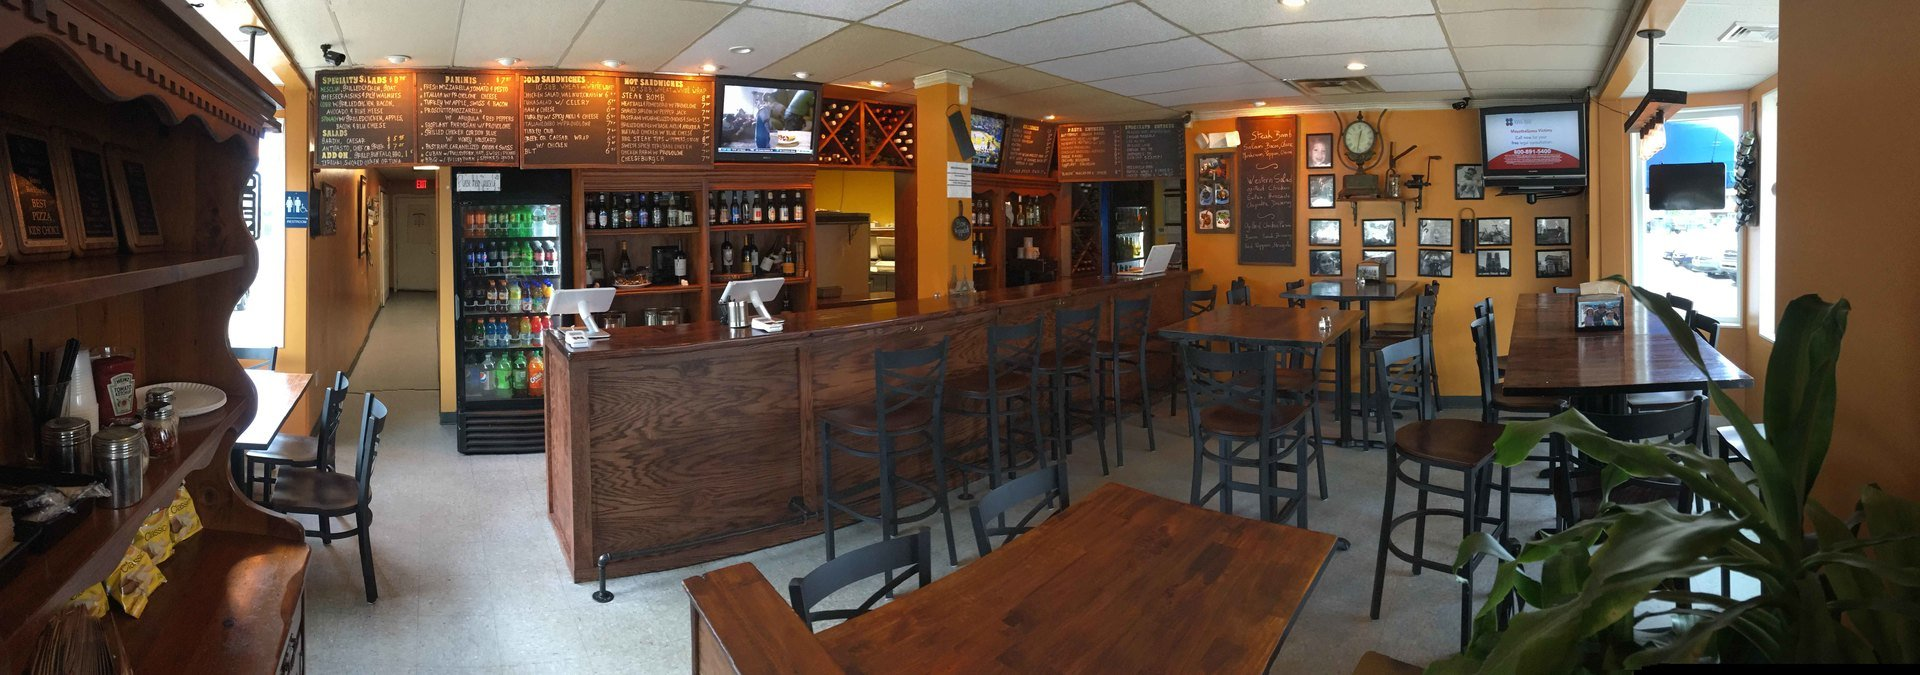 CeCe's Pizza and Catering interior